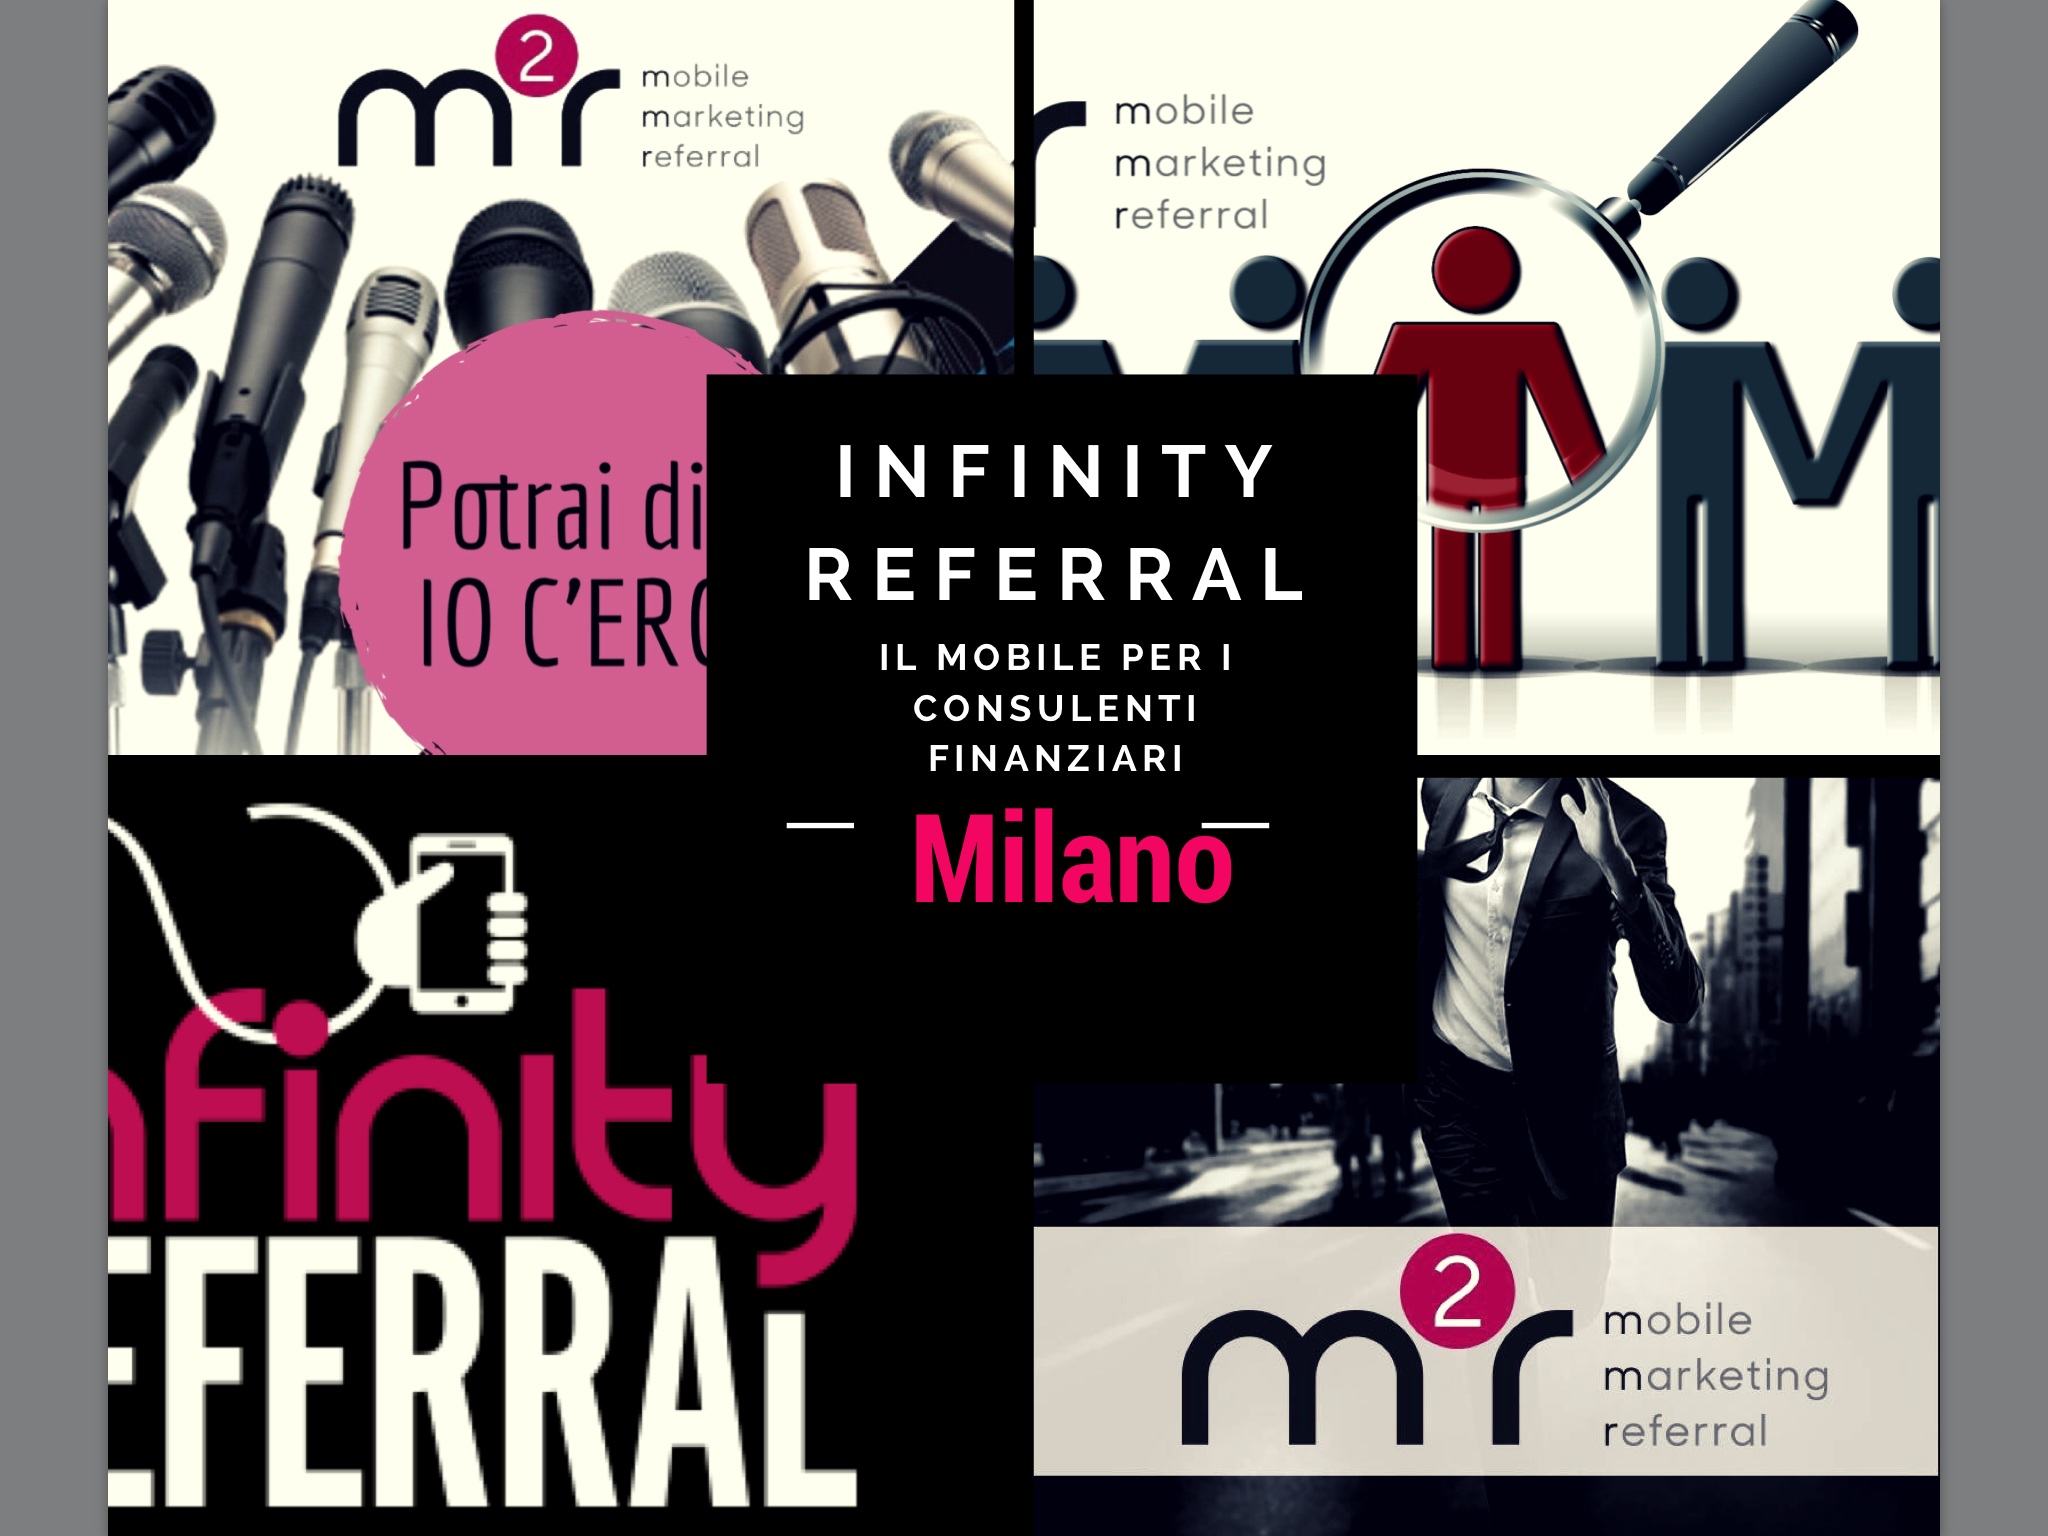 Infinity Referral